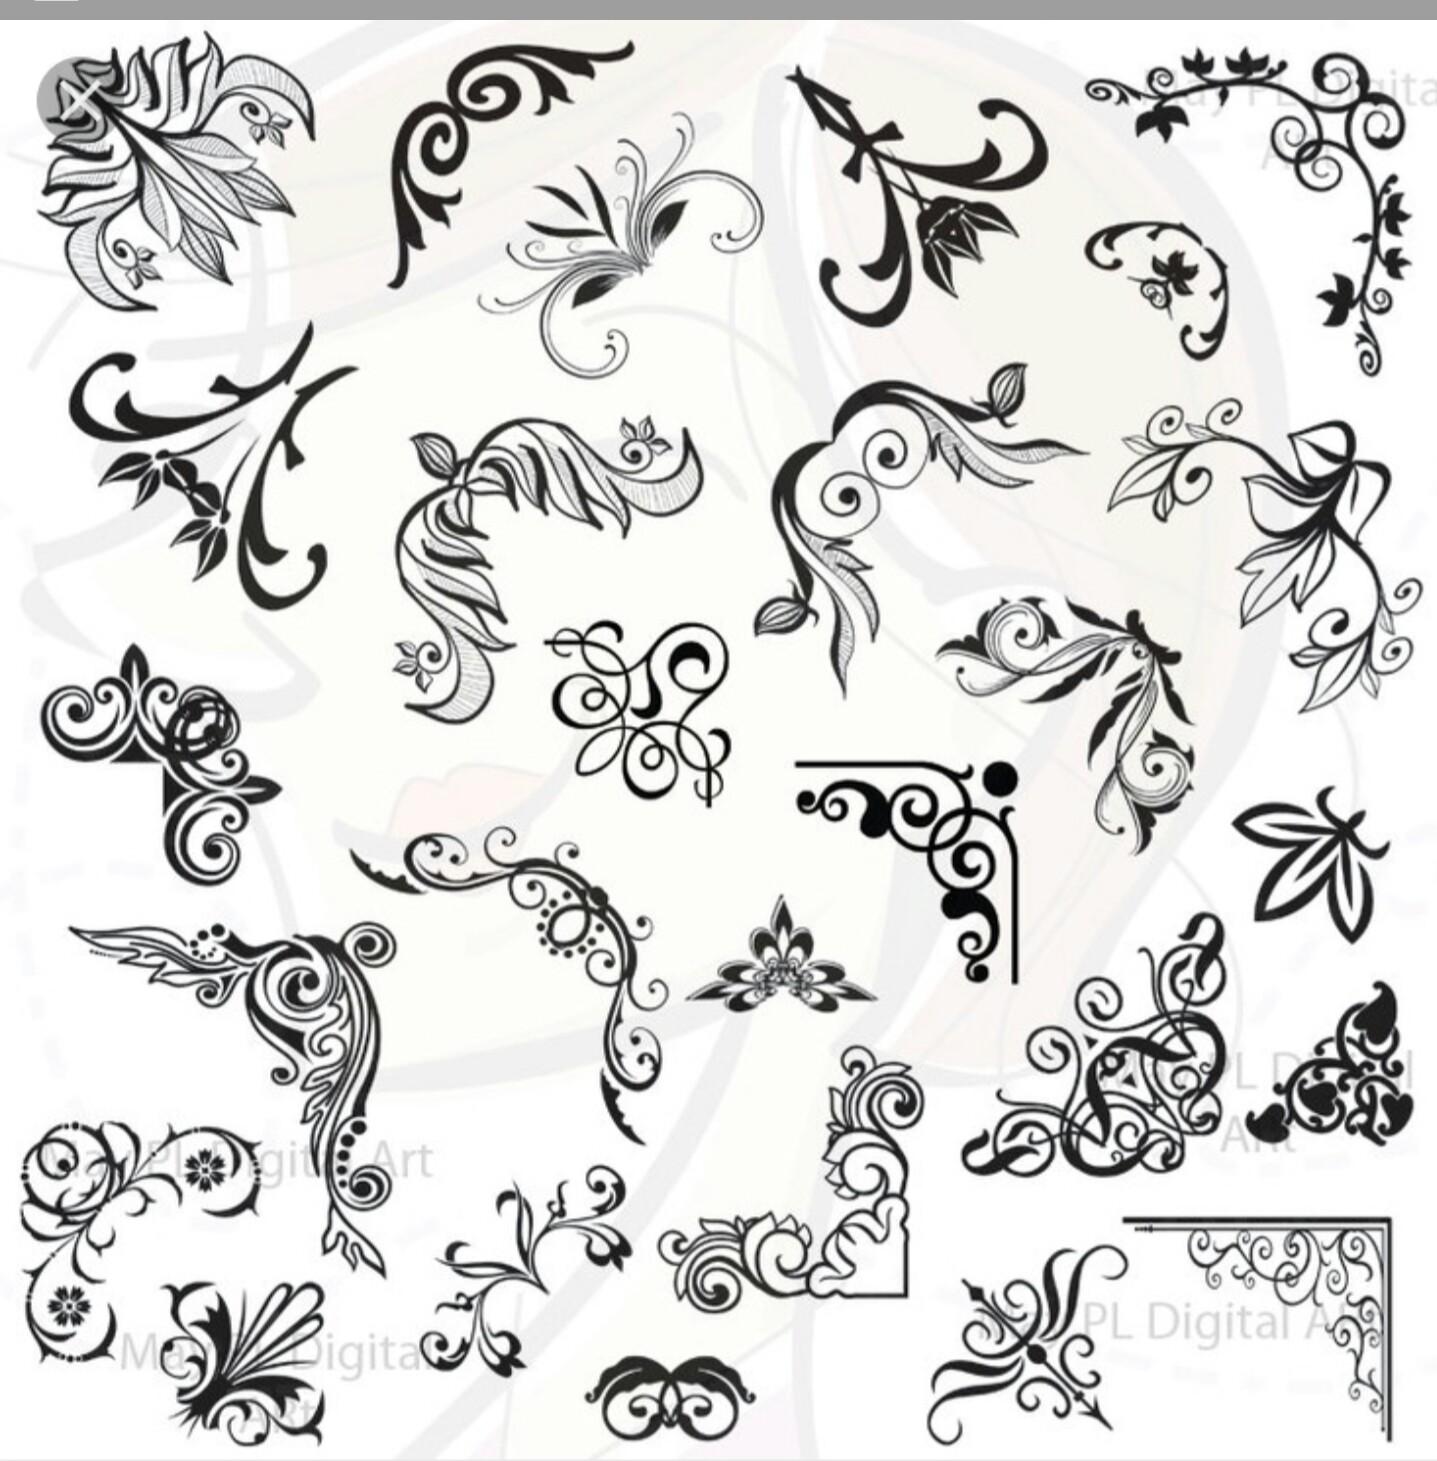 Calligraphy clipart classic Pin Art this and Ukrasi